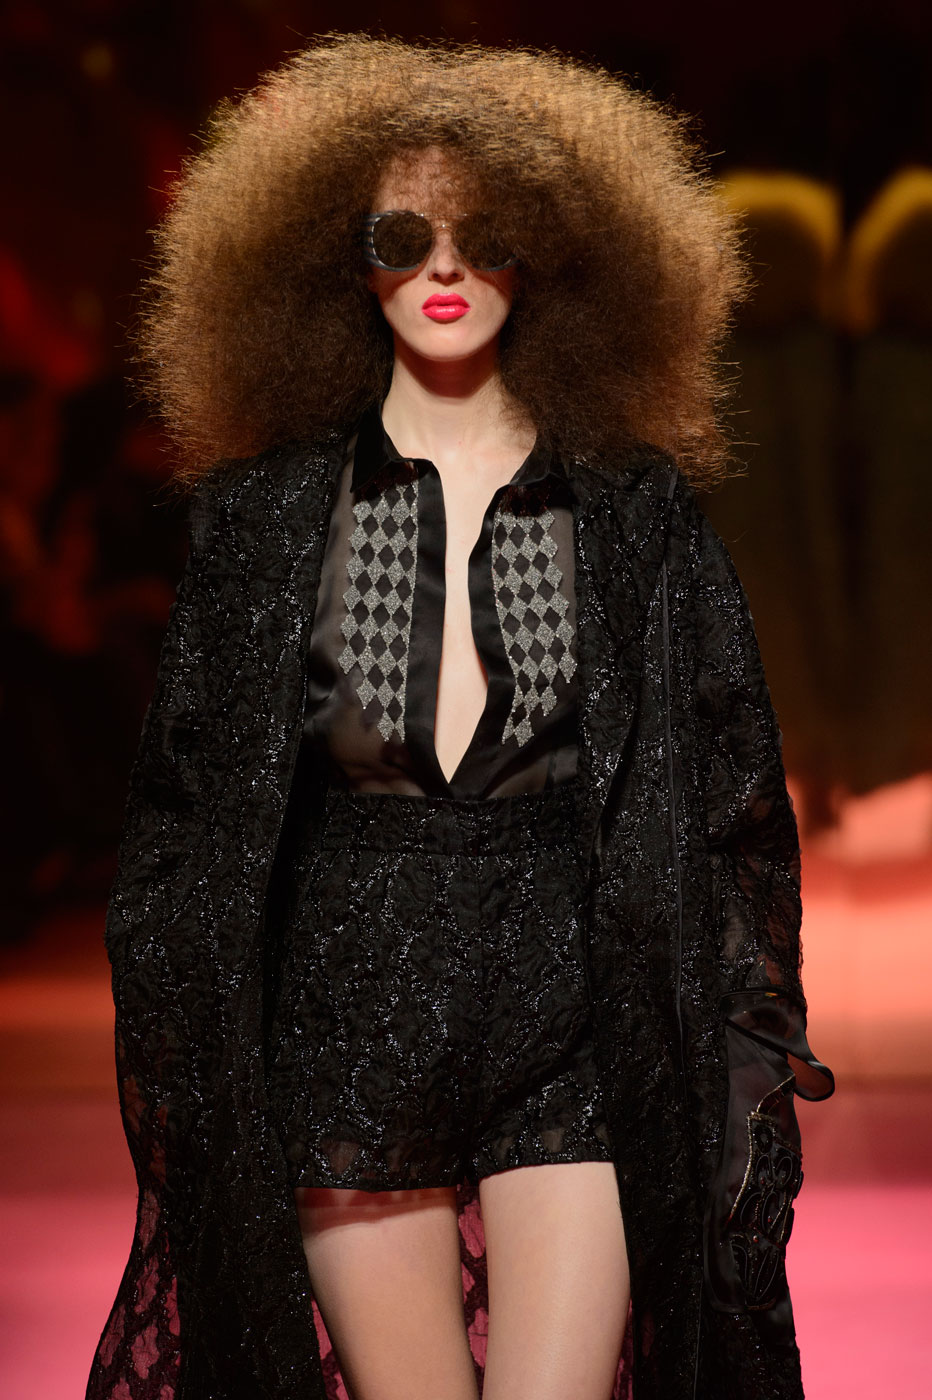 Schiaparelli-fashion-runway-show-haute-couture-paris-spring-summer-2015-the-impression-33